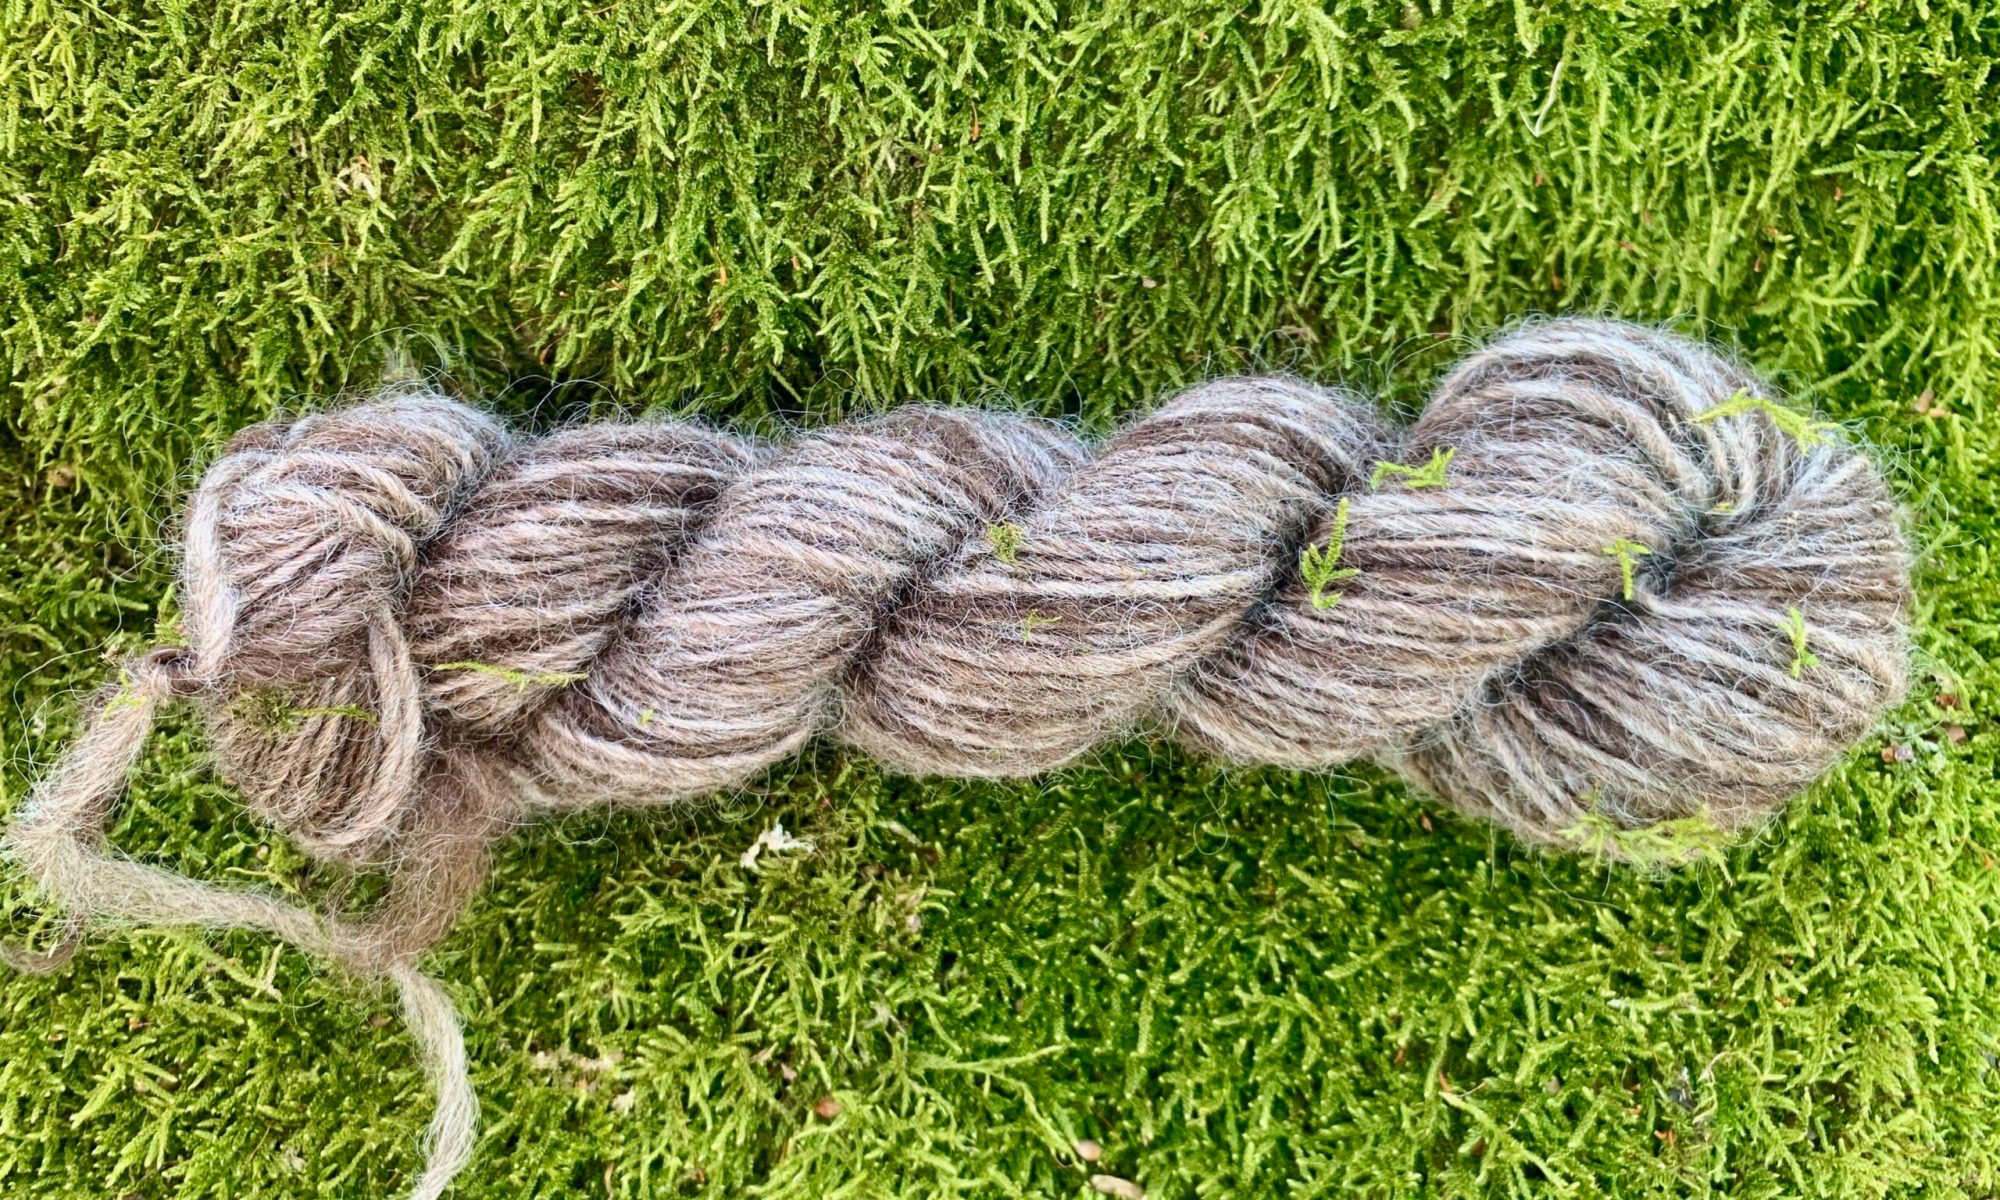 Sport weight single yarn of four shades of brown from Pax's fleece. Spun from hand carded rolags on a floor supported Navajo style spindle. 100 meters, 44 grams. 2270 m/kg. Can I keep this for cuddling?